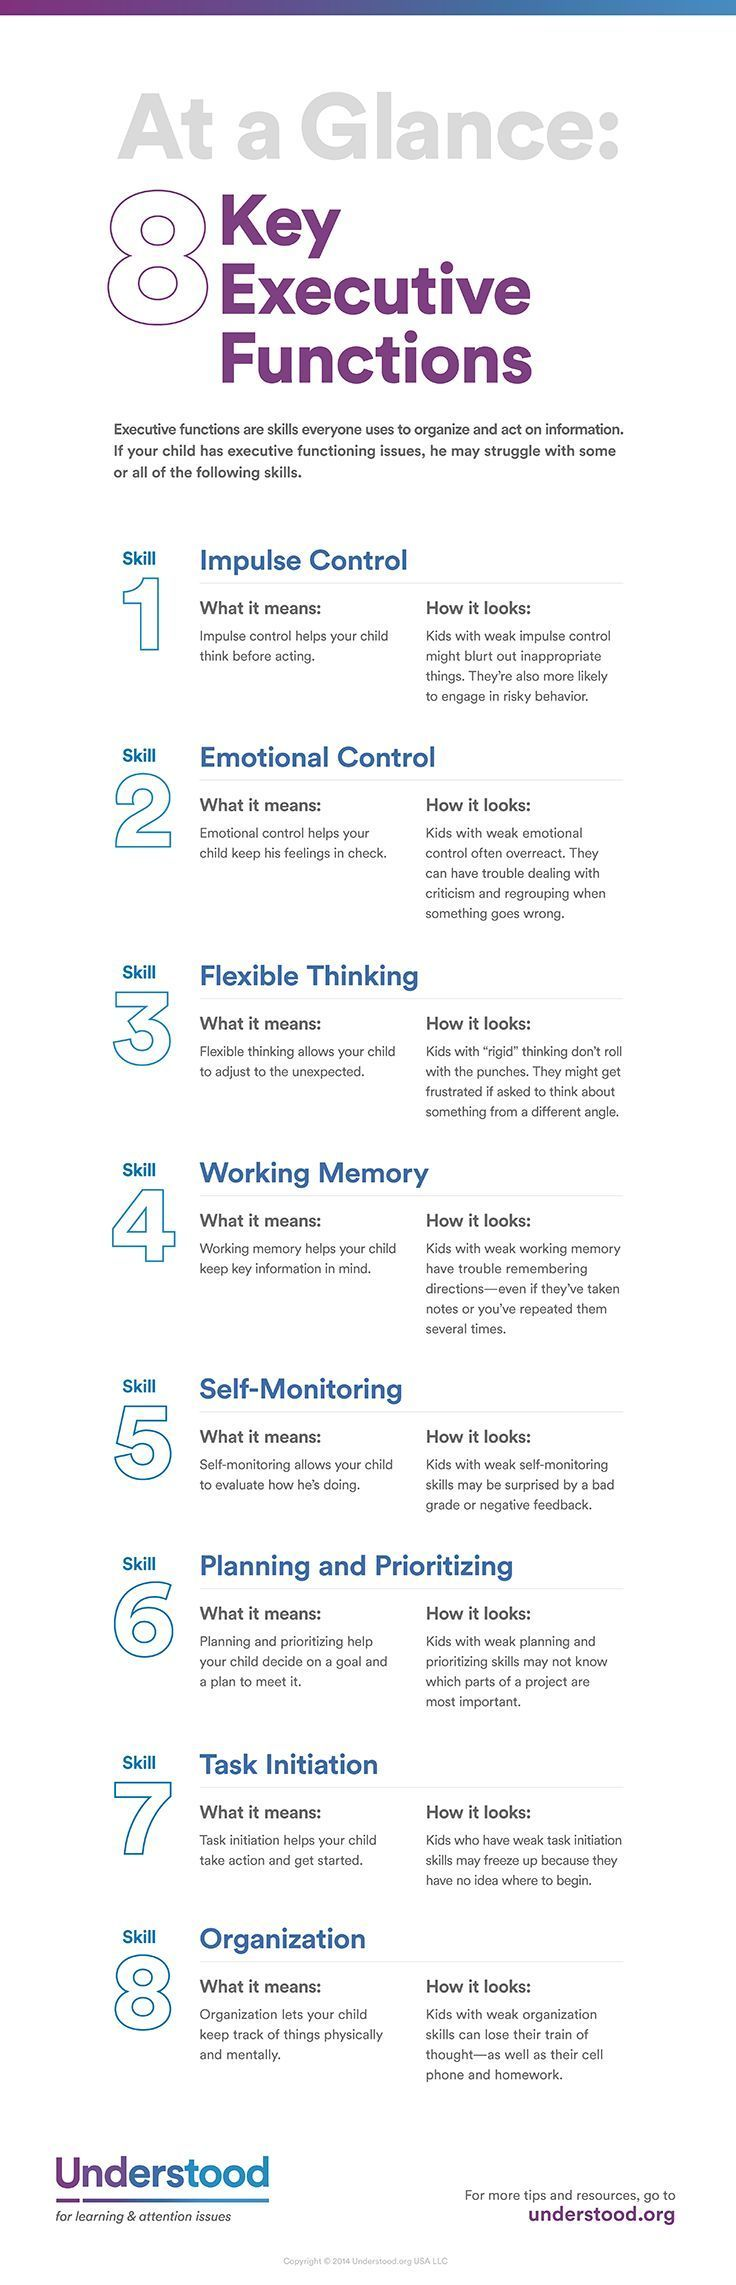 Executive functions let people plan, organize and complete tasks. Here's a closer look at this important set of skills and how executive functioning issues can affect your child's everyday life.